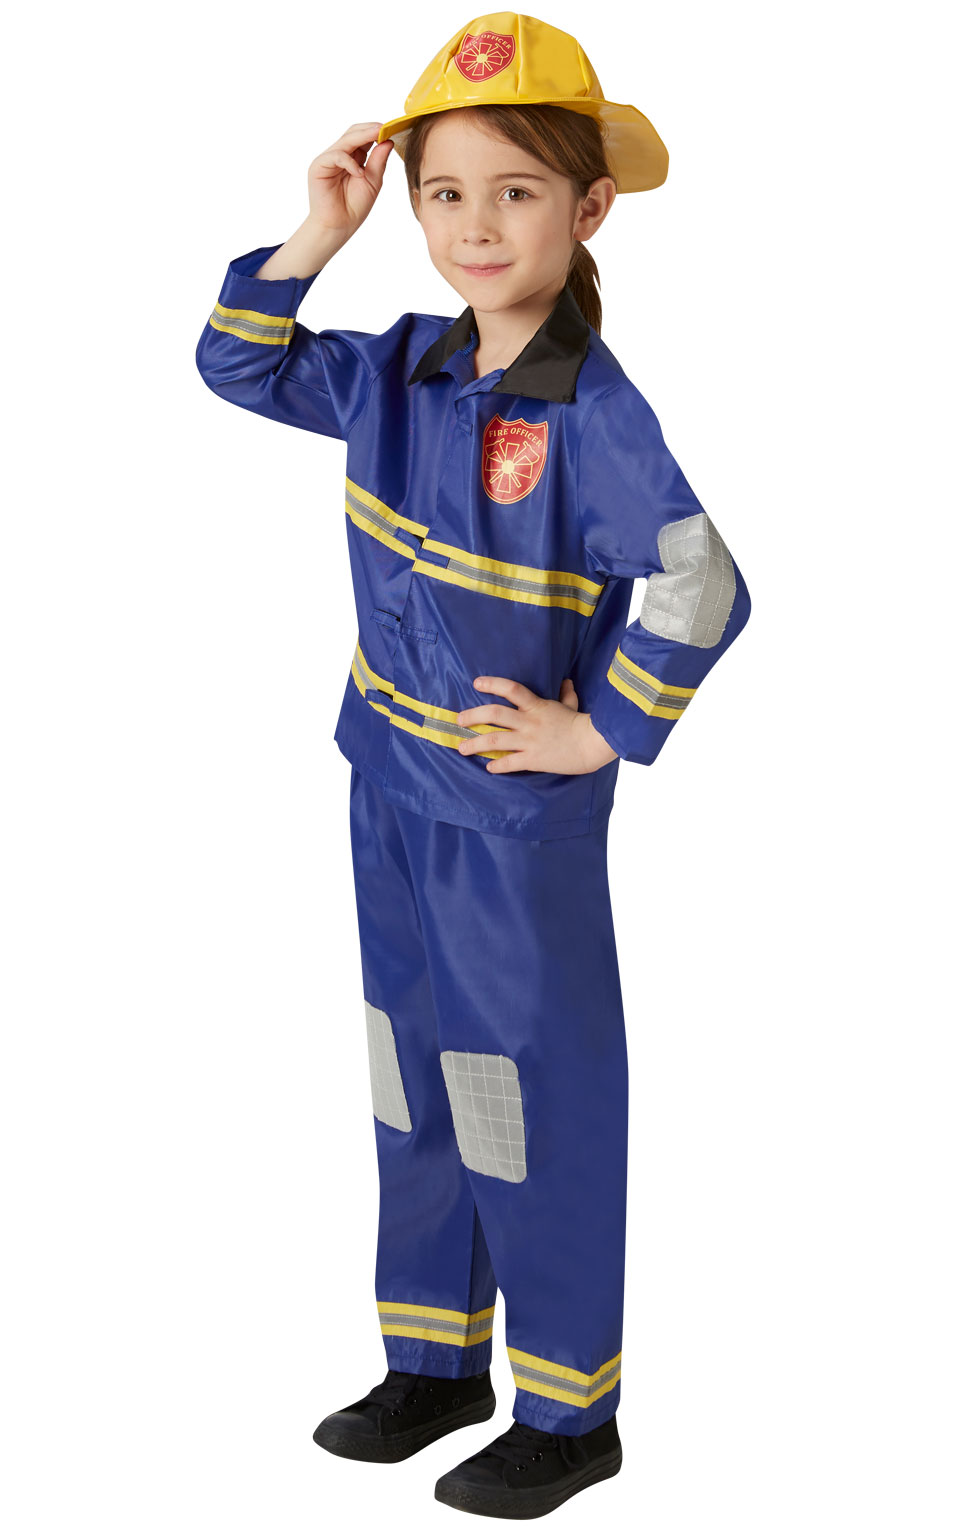 c2116aa115b8 Fancy Dress Costumes & Party Supplies »; Role-Playing Childrens Costumes »; Firefighter  Costume. Previous Next